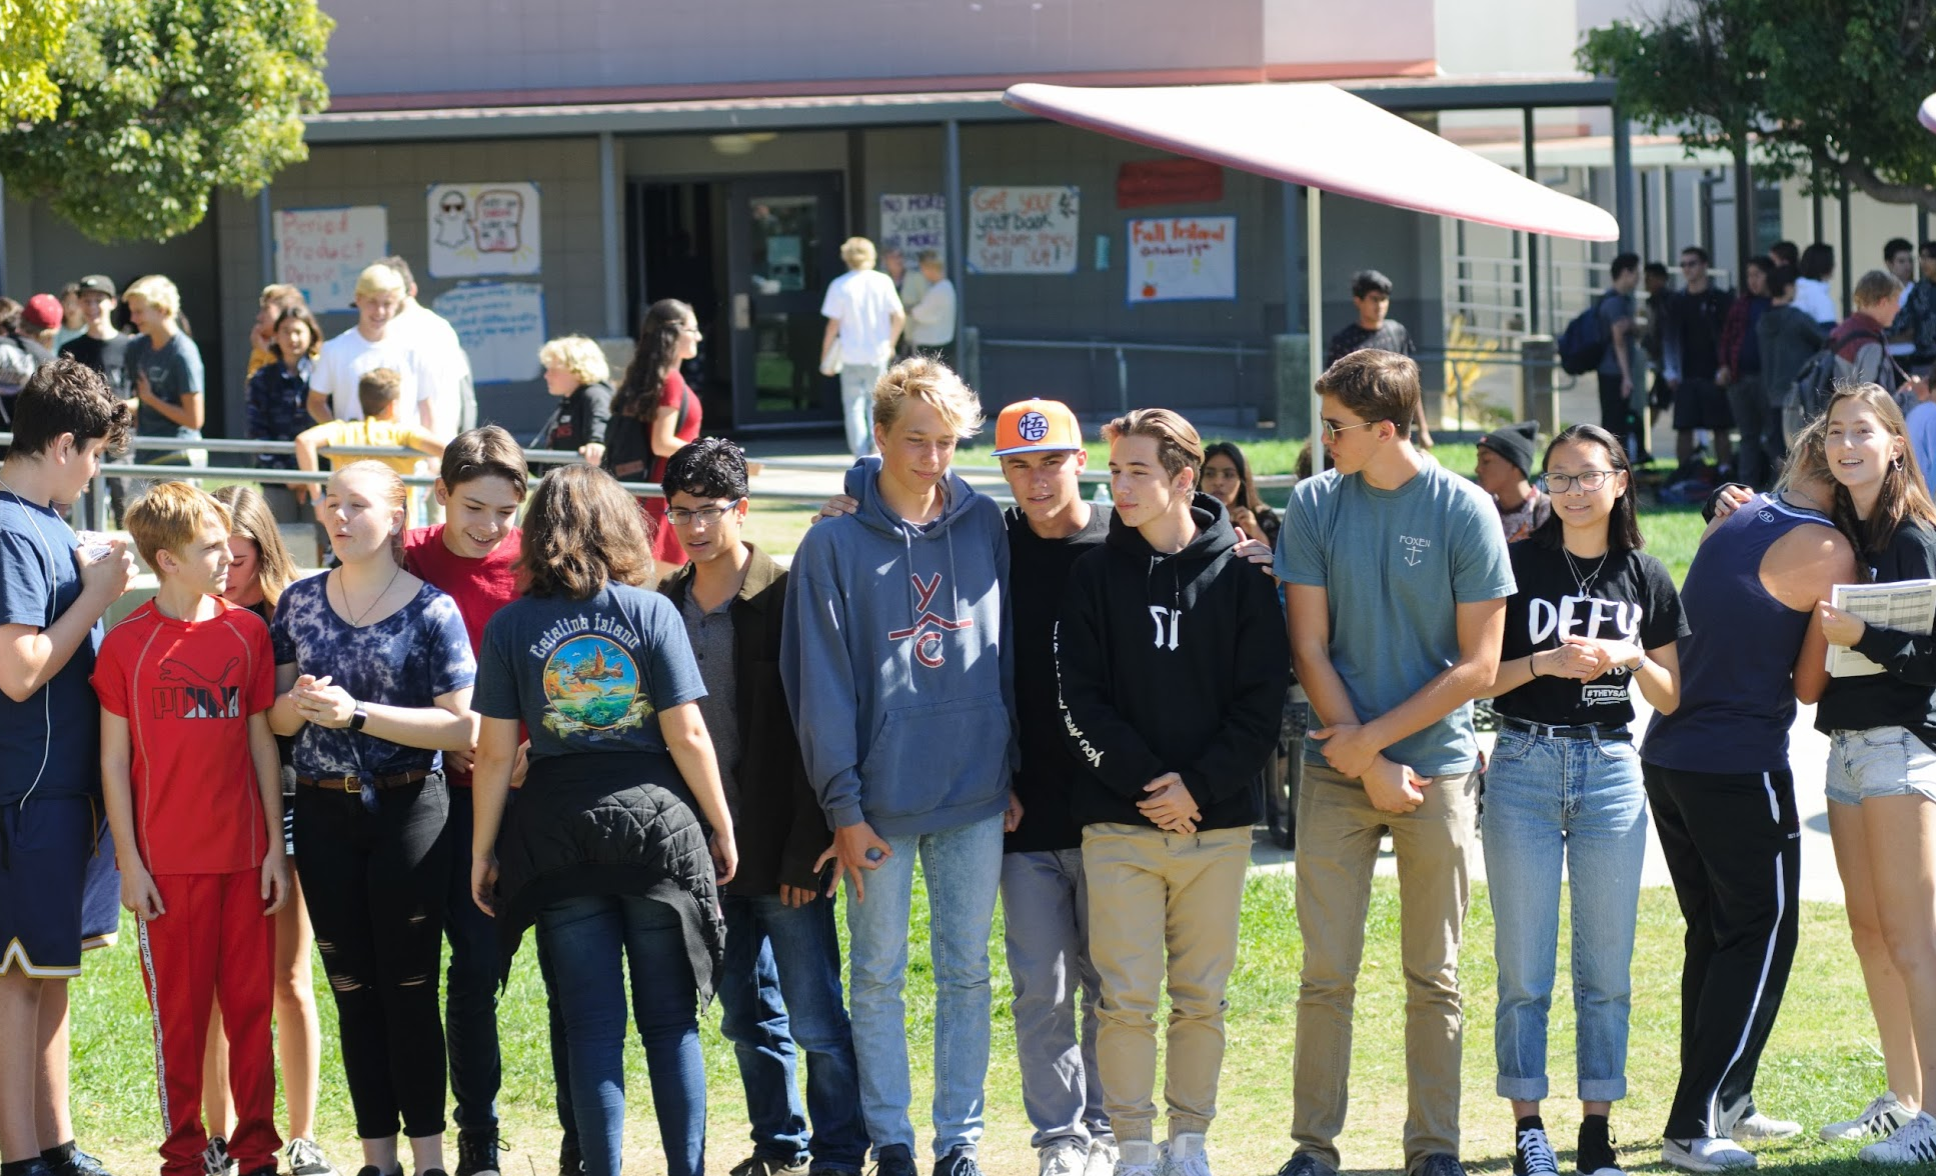 WE Club's Awareness Walk sheds light on student inequality